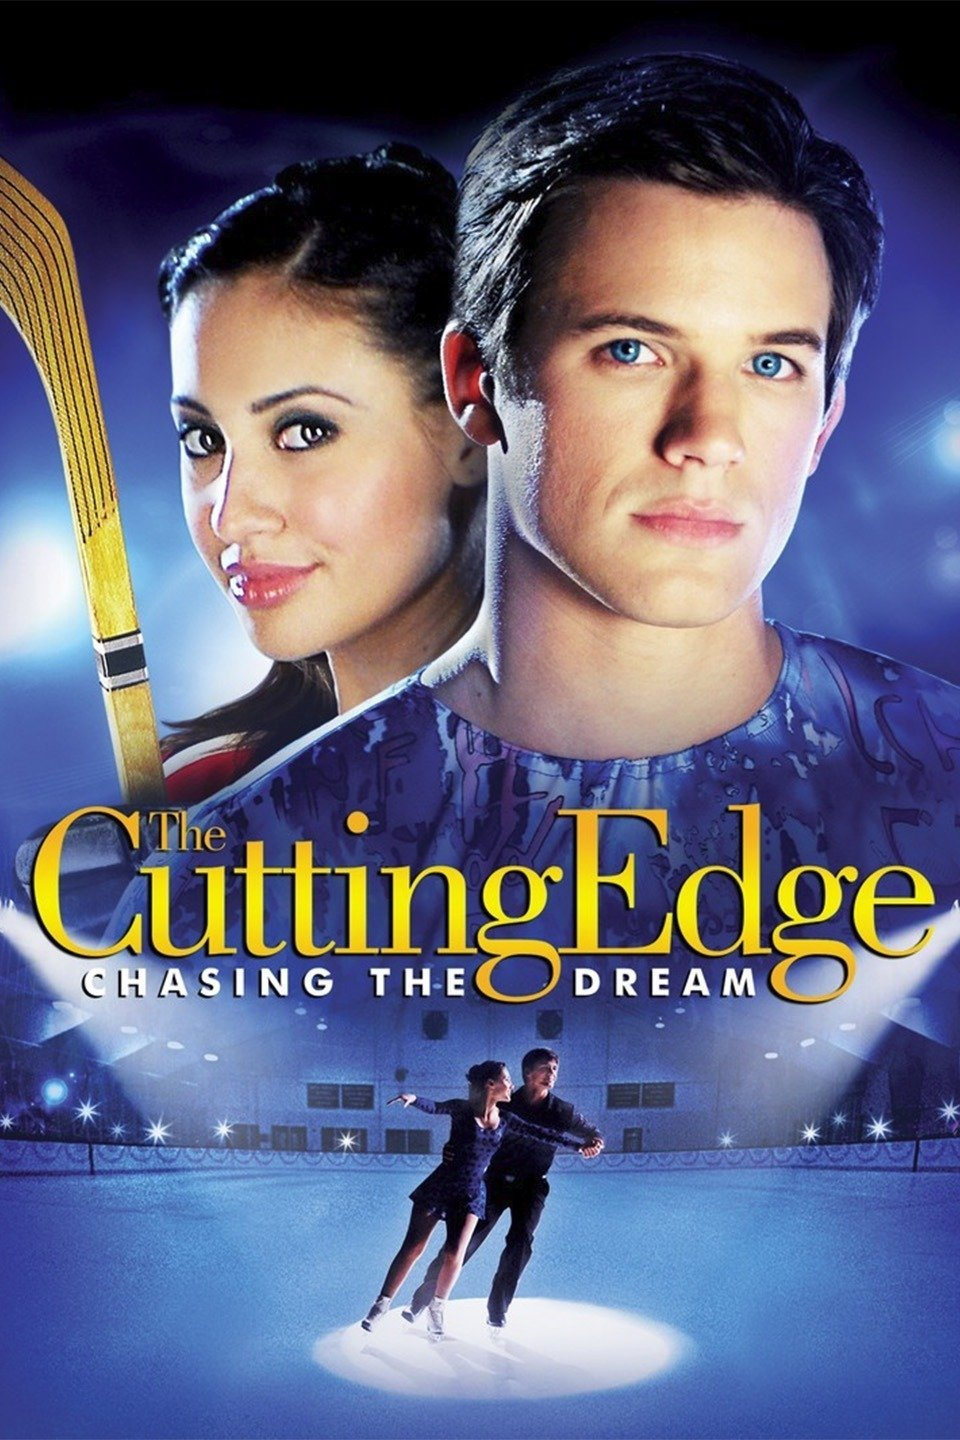 The Cutting Edge: Chasing the Dream (2008)